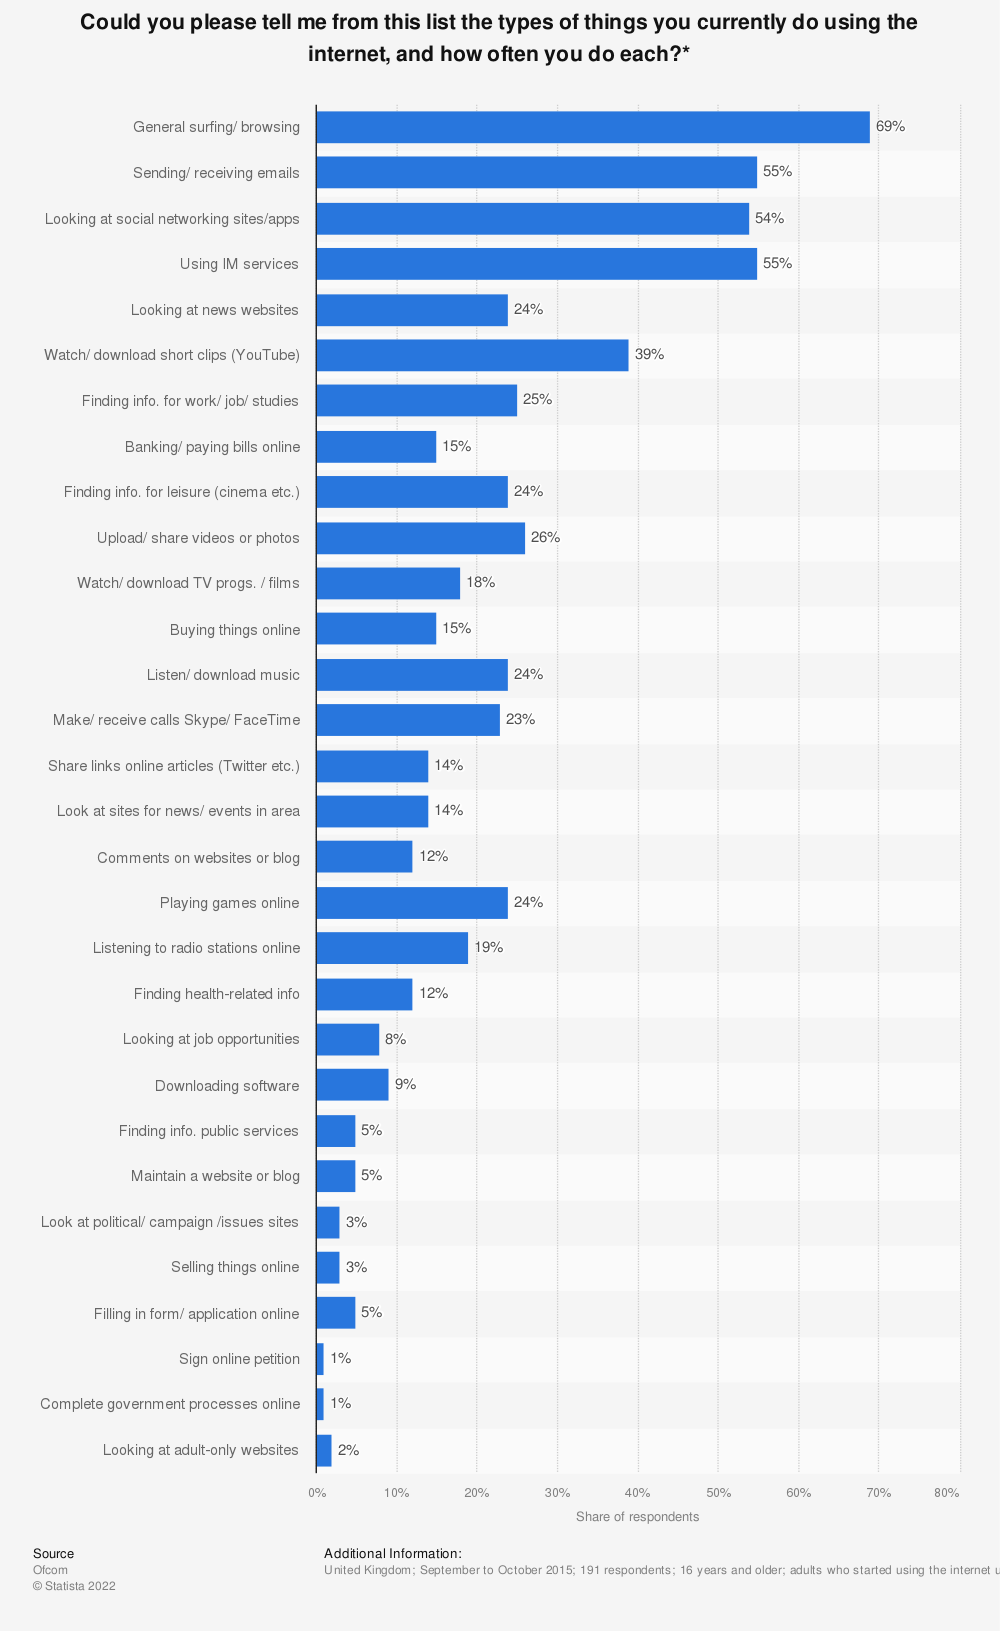 Statistic: Could you please tell me from this list the types of things you currently do using the internet, and how often you do each?* | Statista